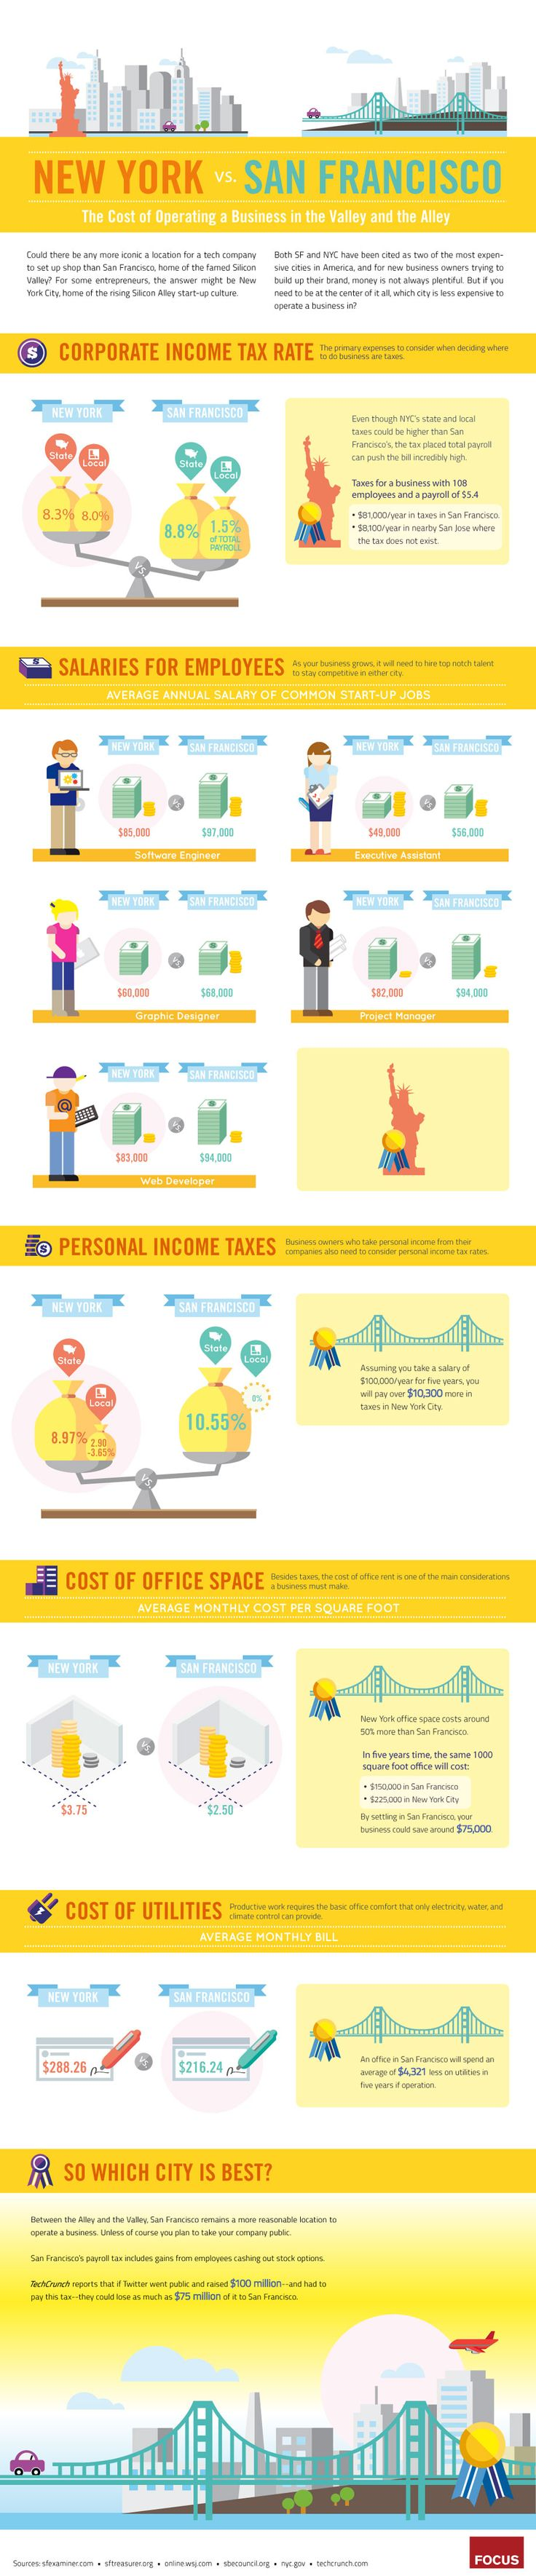 images about infographic on Pinterest   Credit report     If you plan on starting a tech company  is San Francisco the best option  What about a high fashion shoe company  New York  home to more fashion shows than